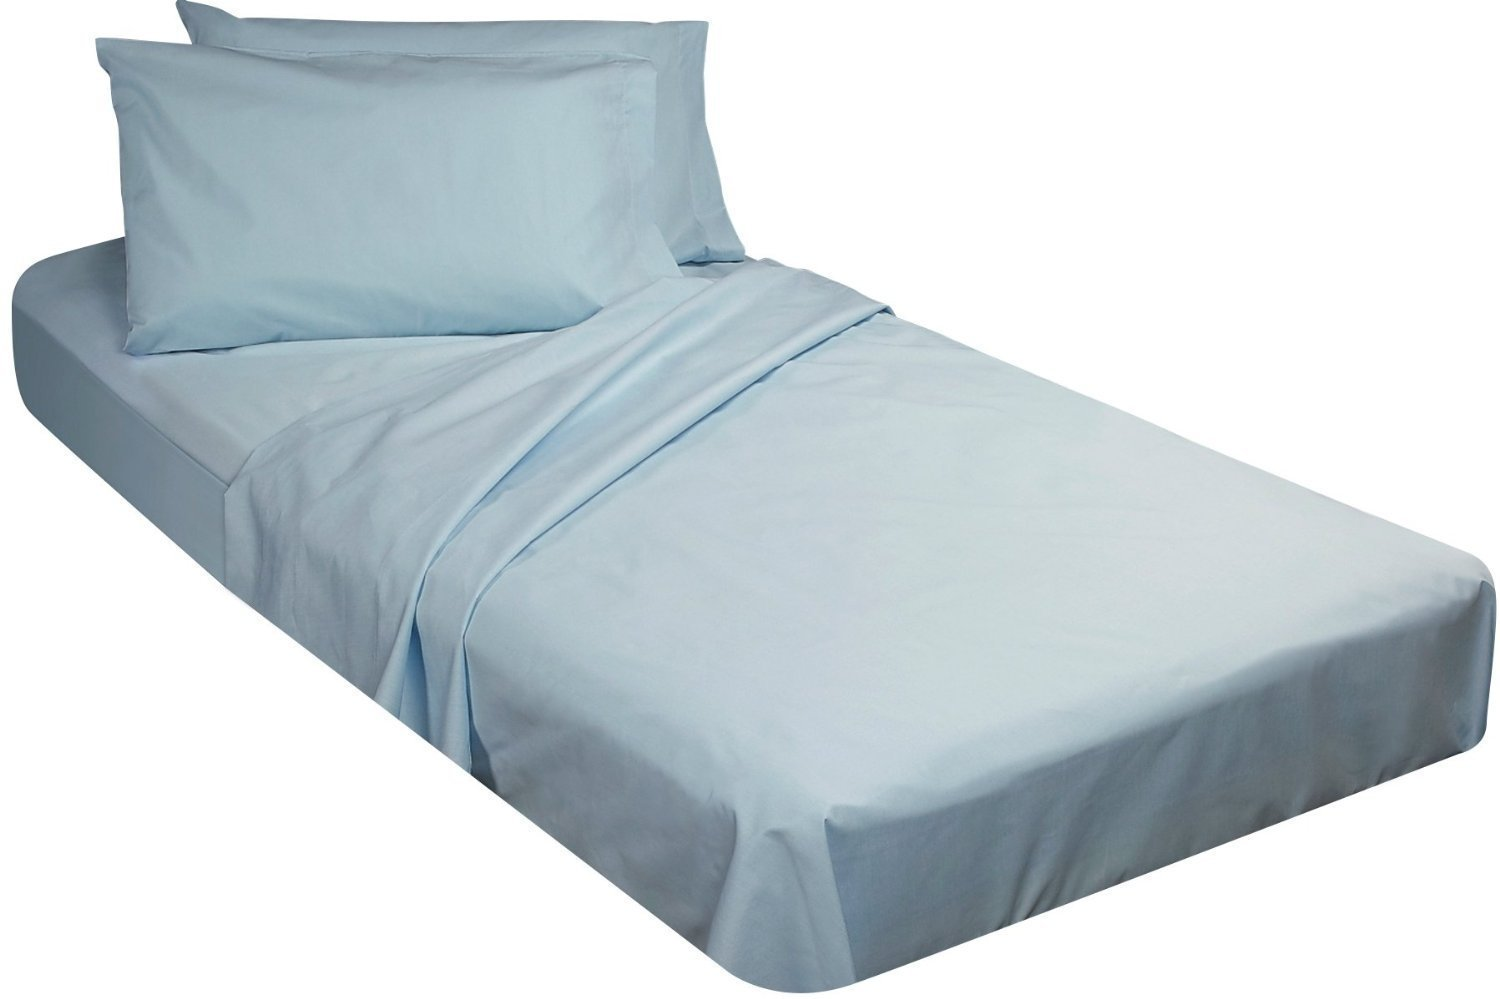 Gilbins Cot Sheets 30 x 75 (Fitted, Flat, Sets) 4 Piece Set Blue by Gilbins